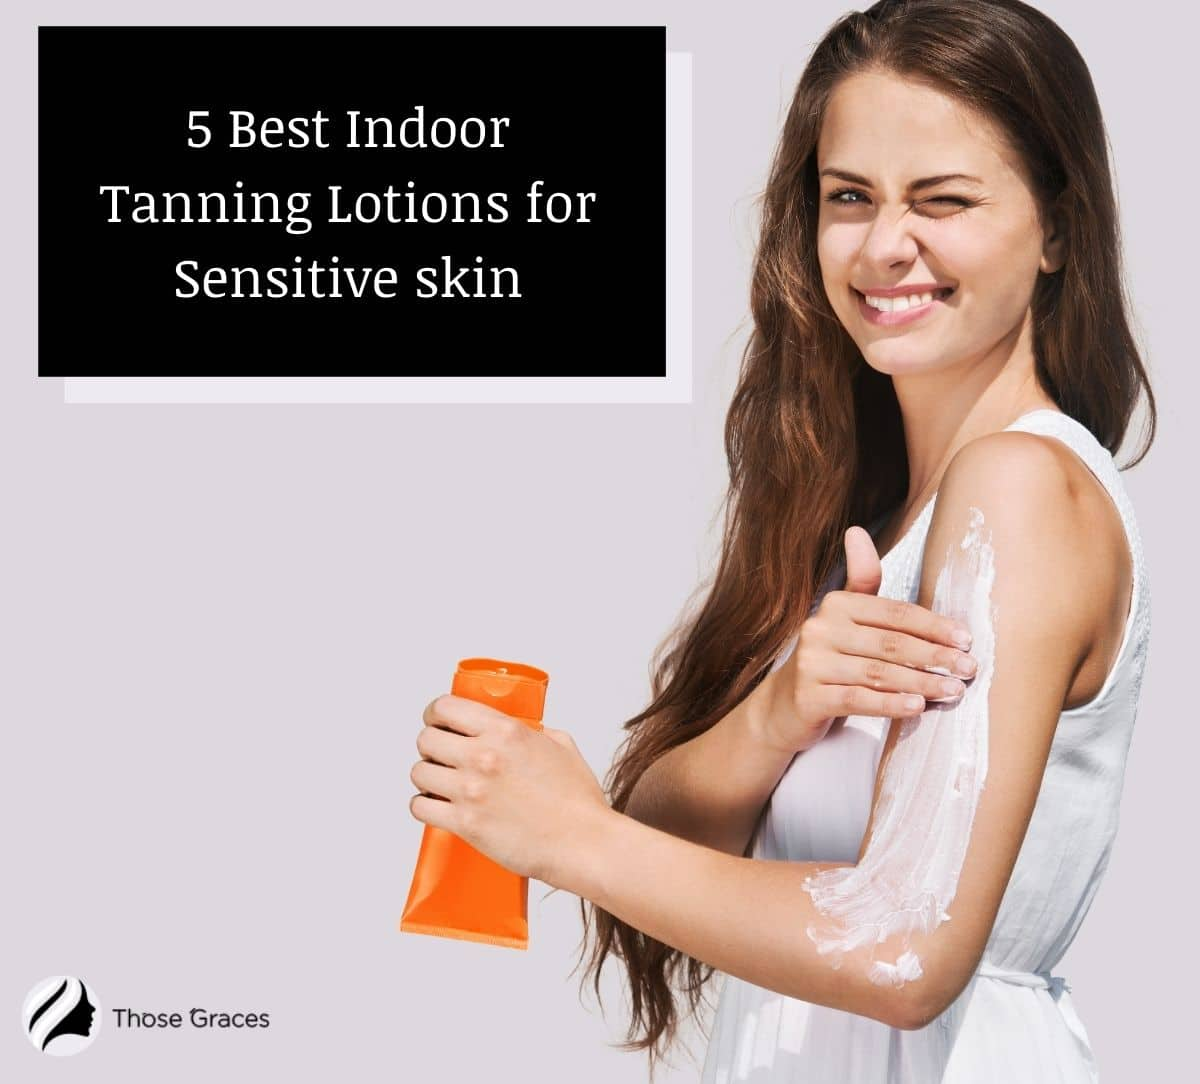 a happy lady putting the best indoor tanning lotion for sensitive skin to her left arm